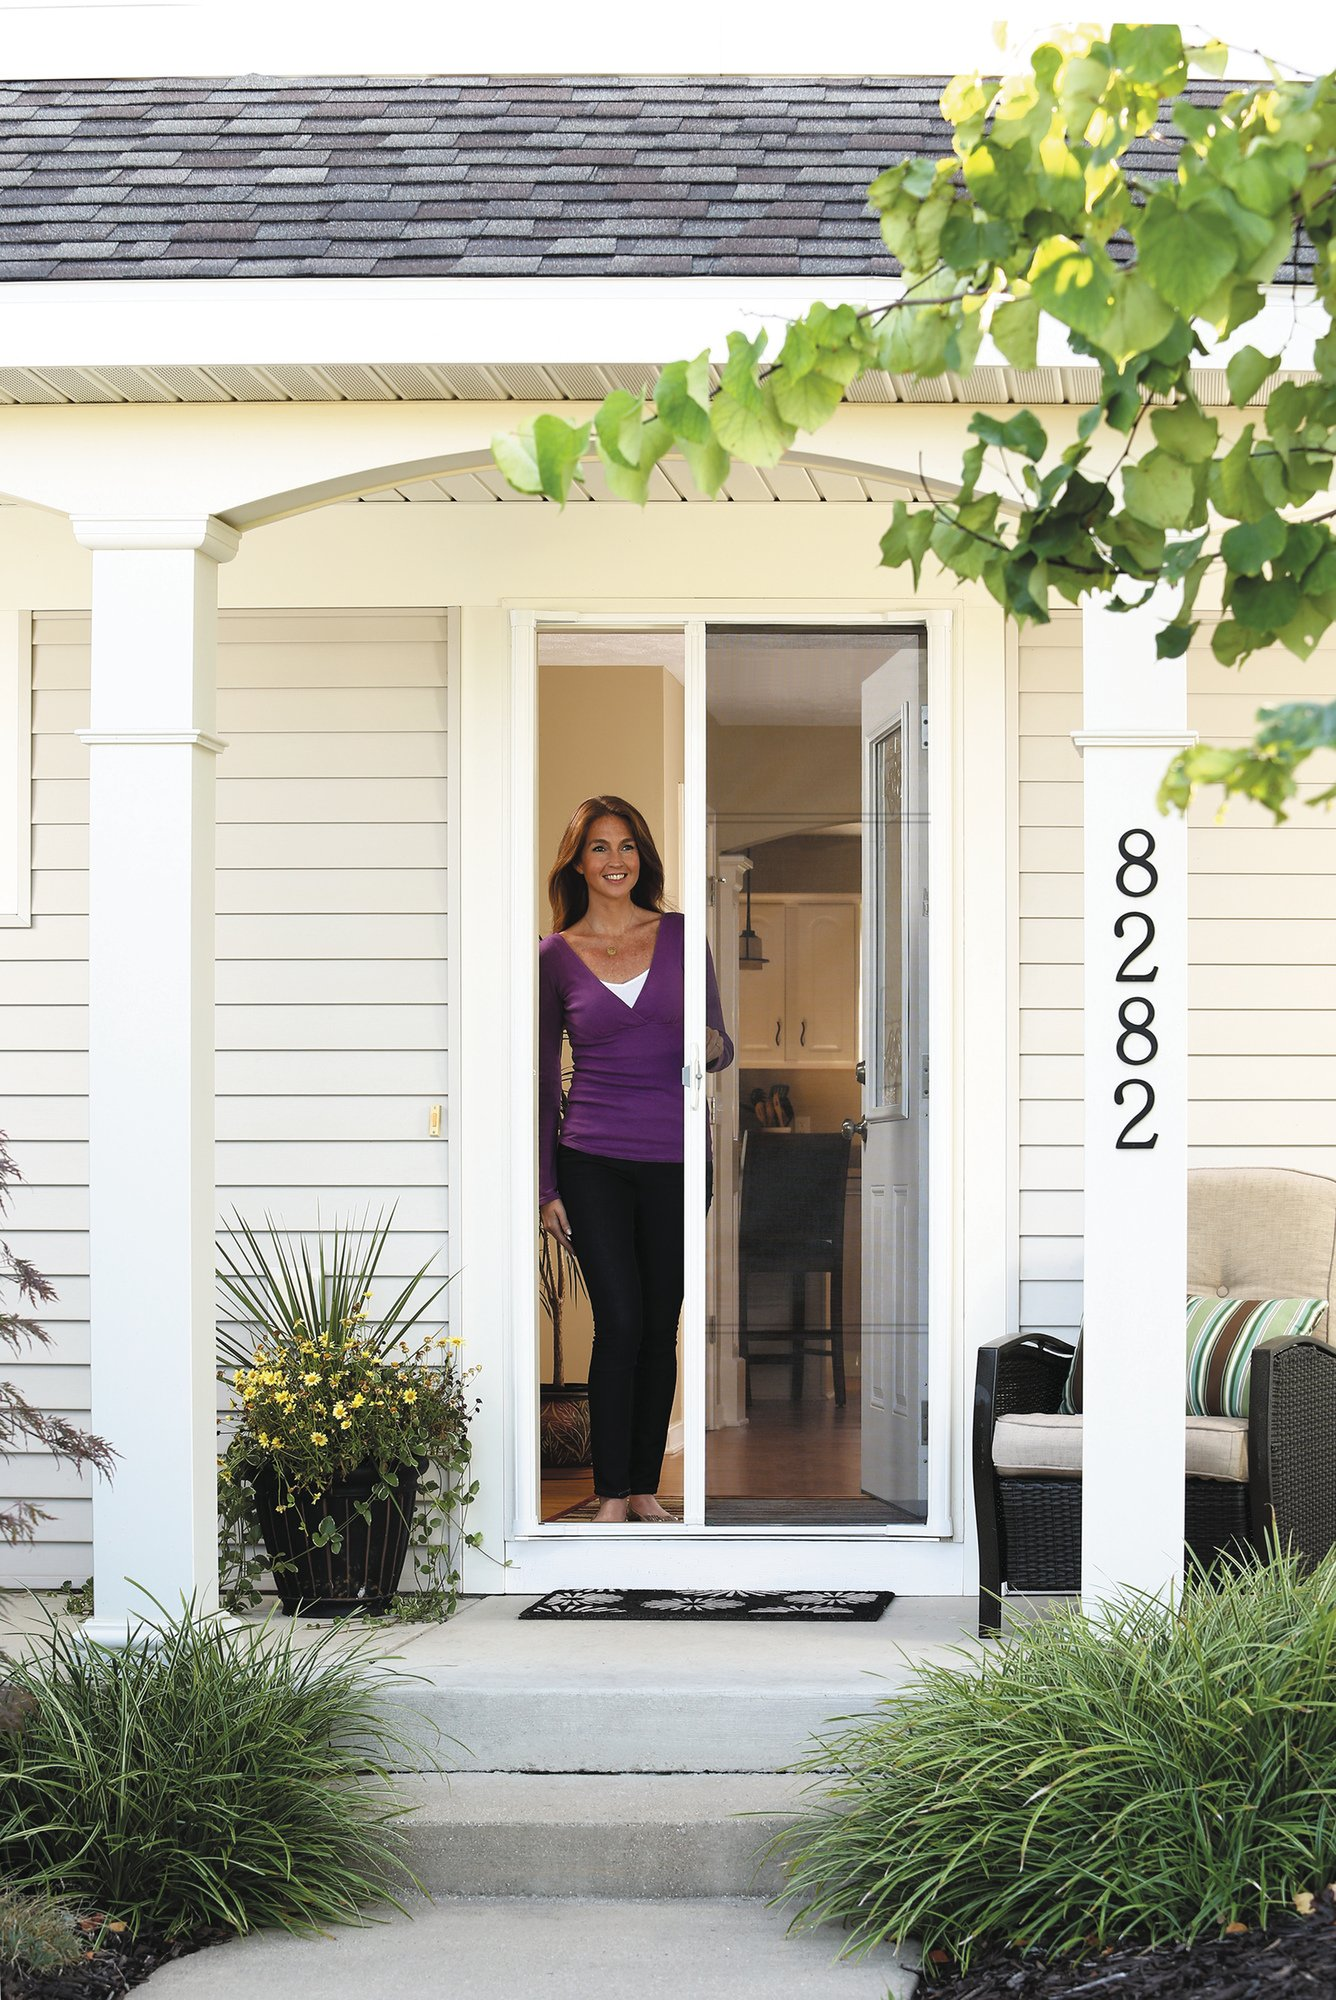 ODL Brisa Premium Retractable Screen for 78 in. Inswing/Outswing Hinged Doors - Bronze by ODL (Image #2)